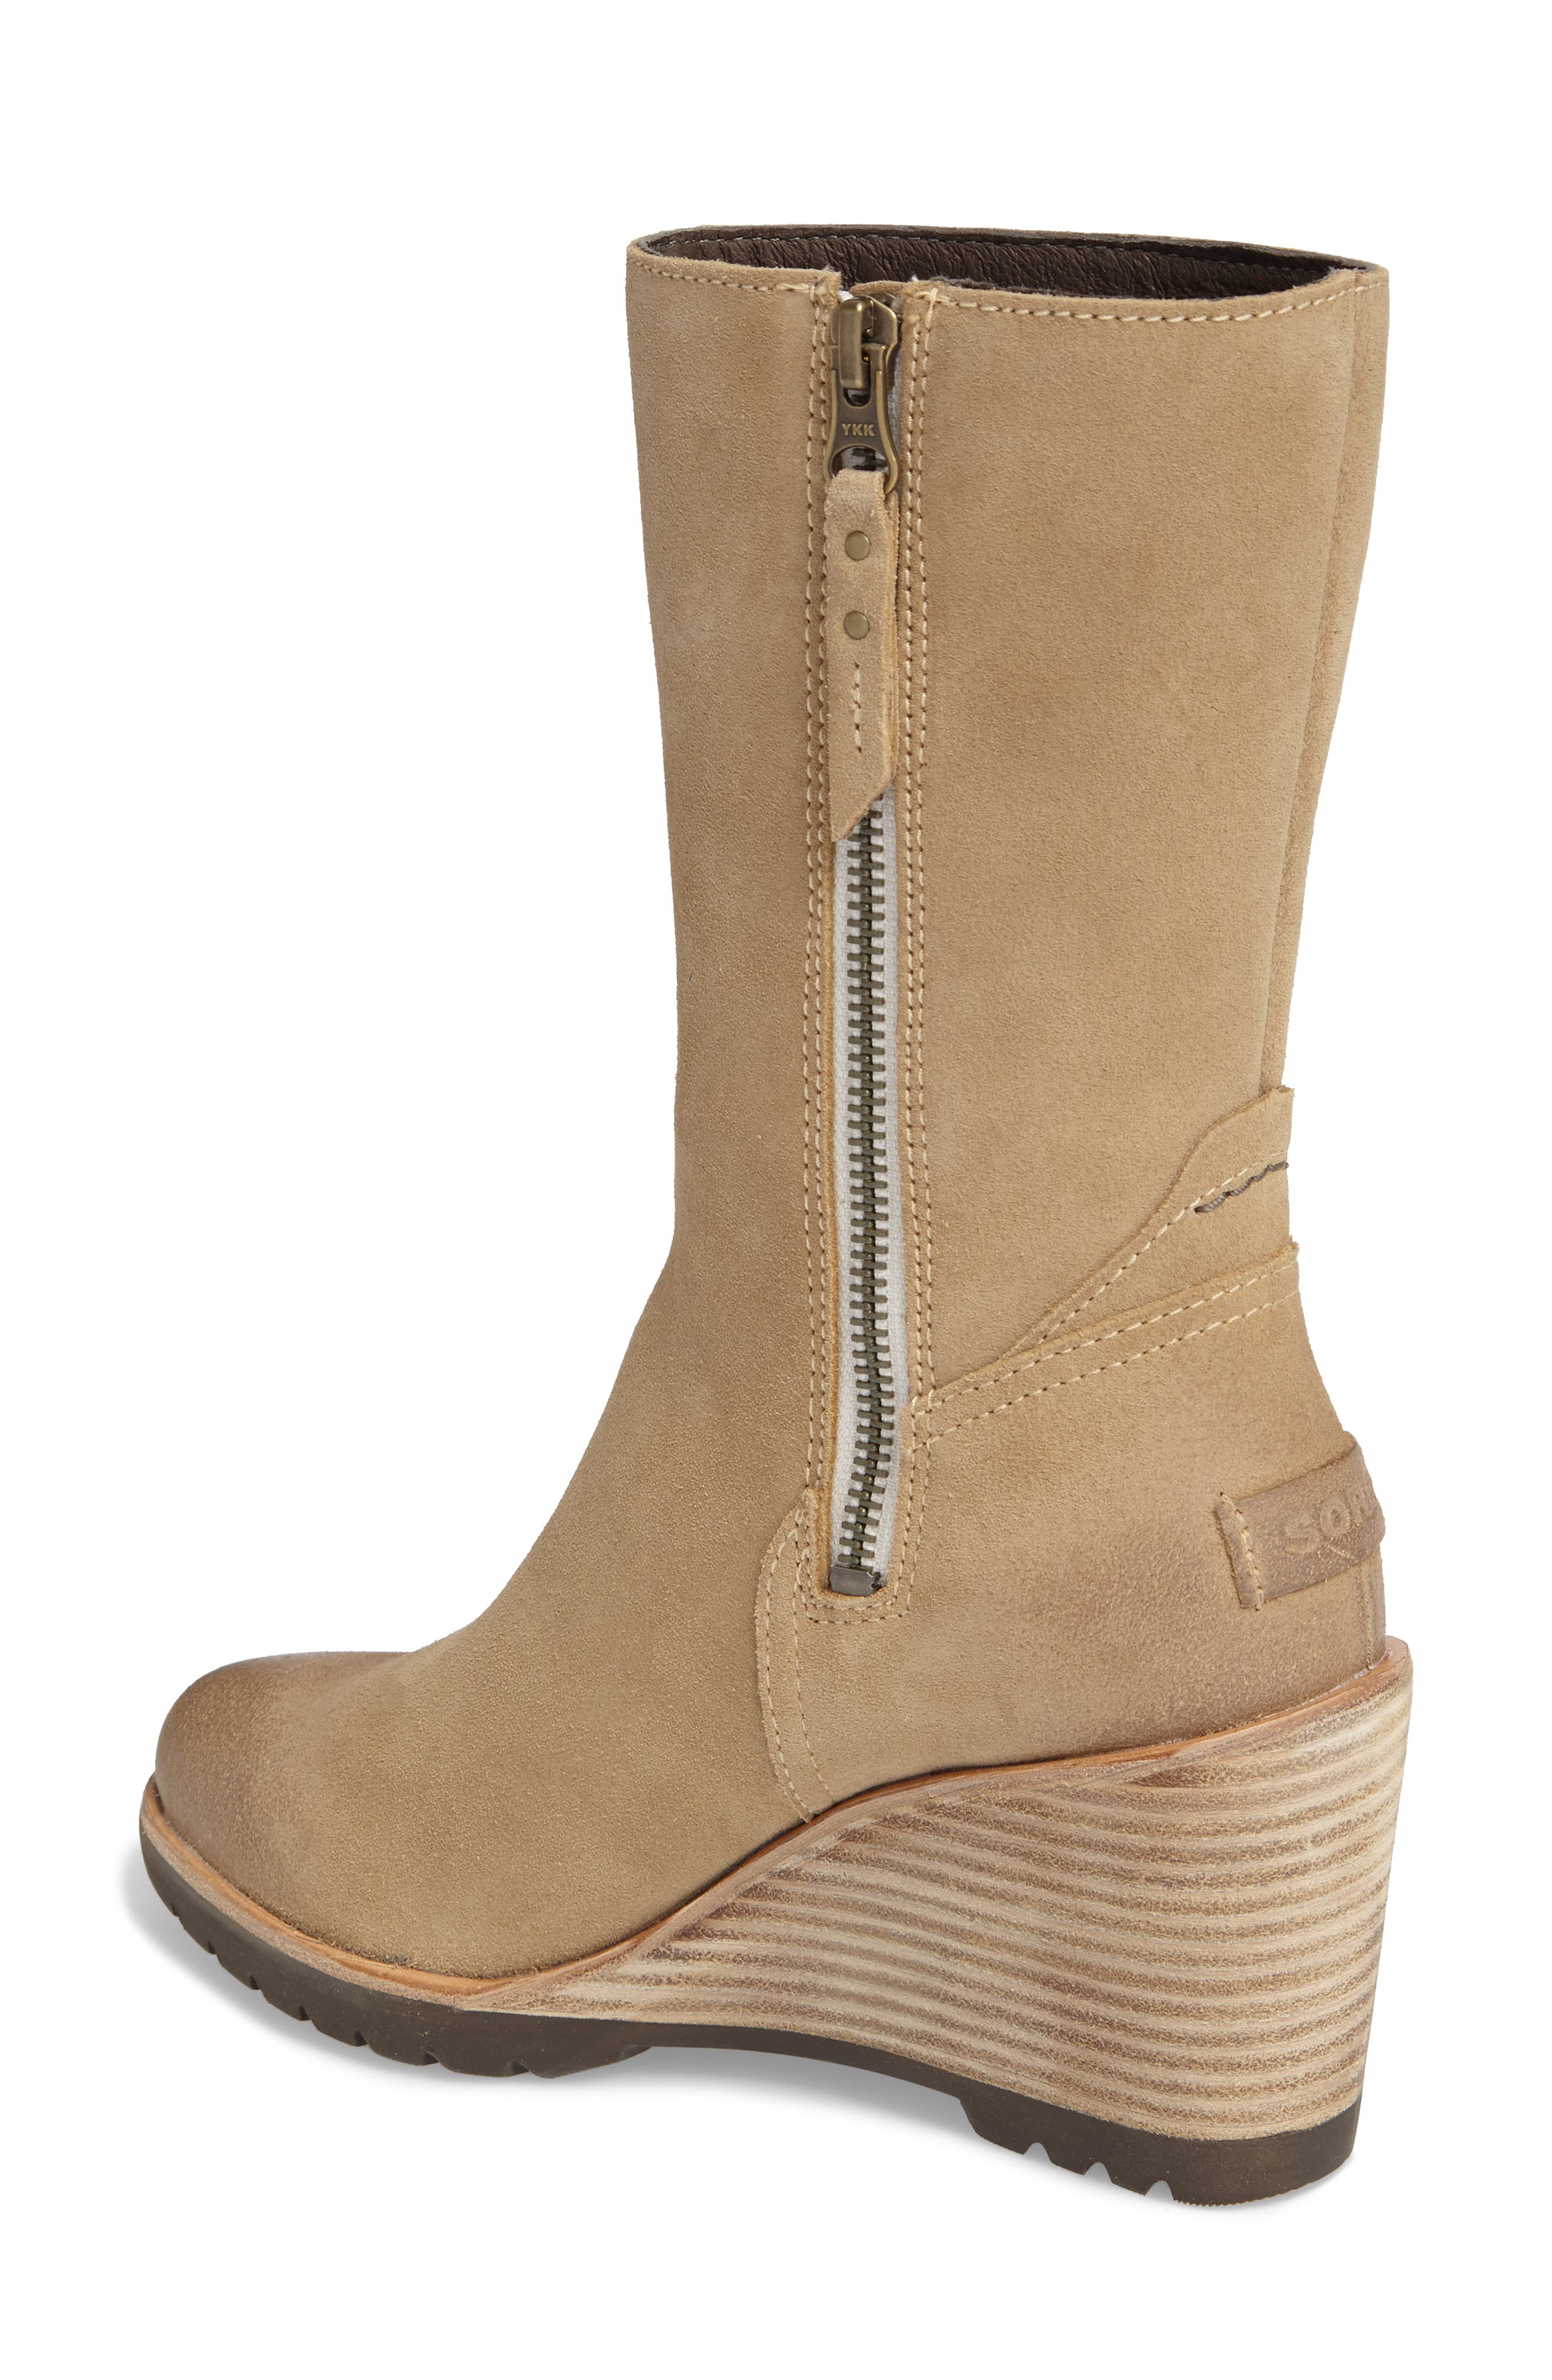 After Hours Waterproof Bootie,                             Alternate thumbnail 4, color,